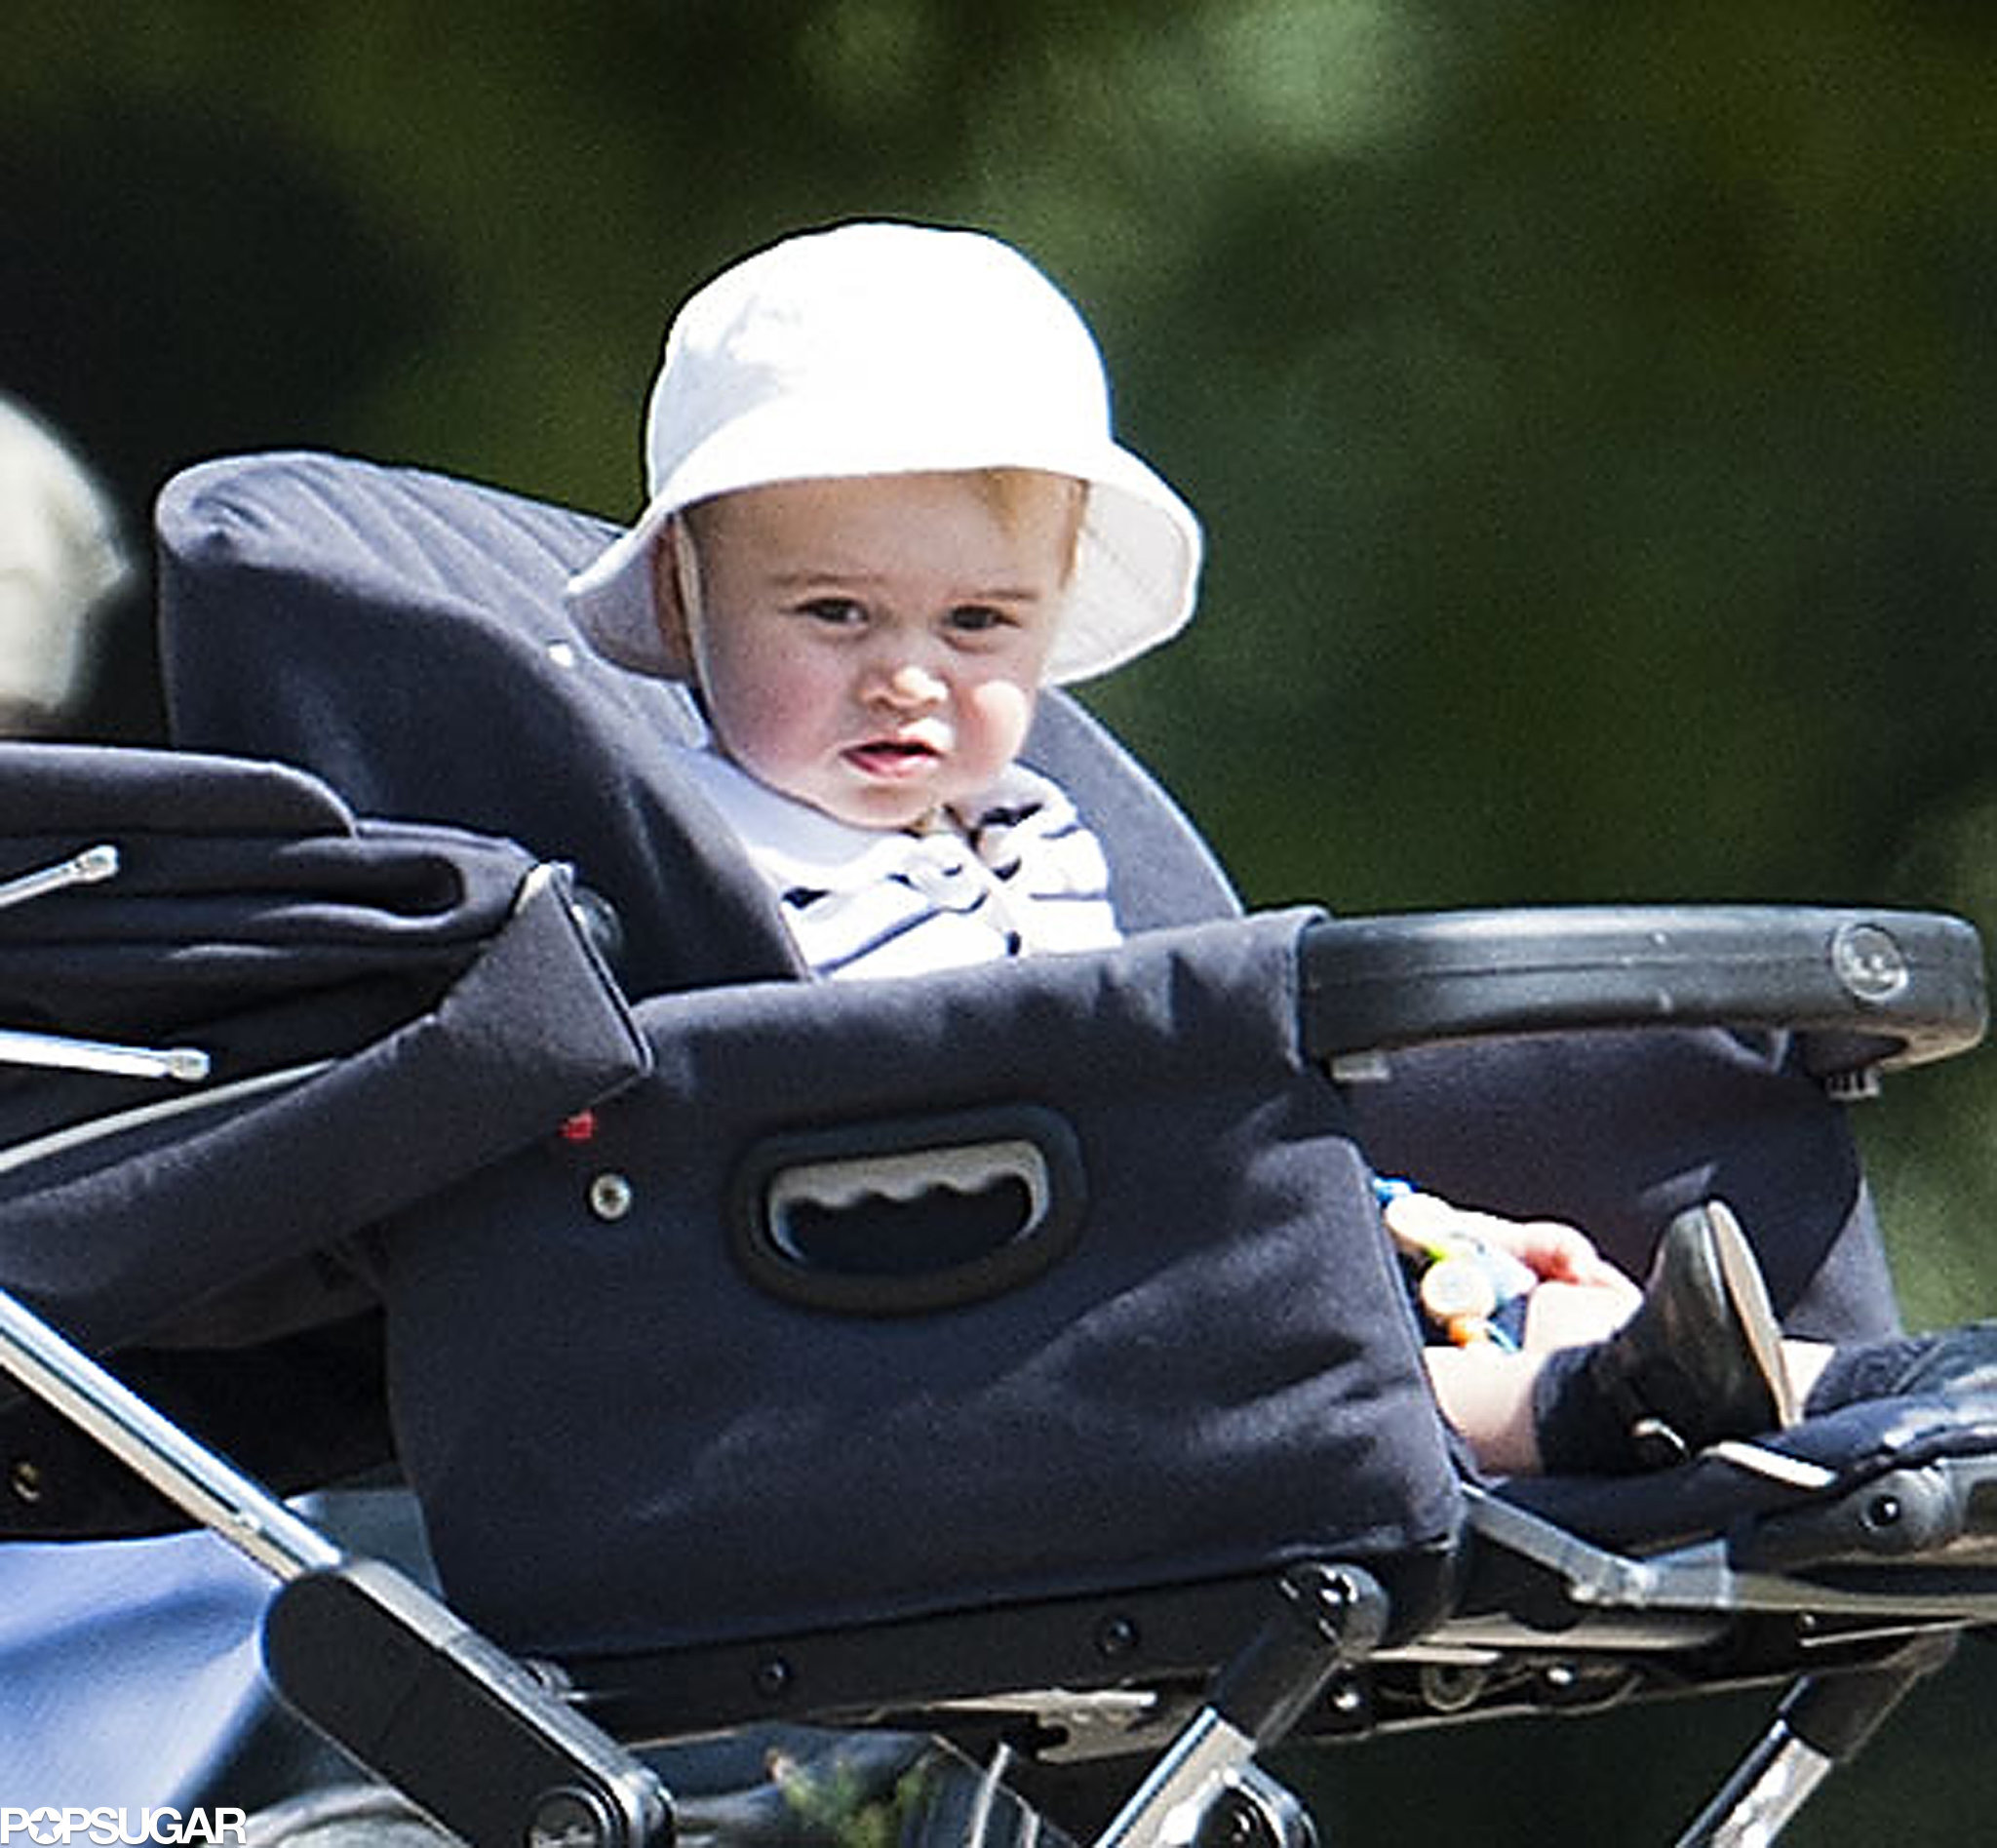 Kate Middleton Pushing Prince George in a Stroller | POPSUGAR ...